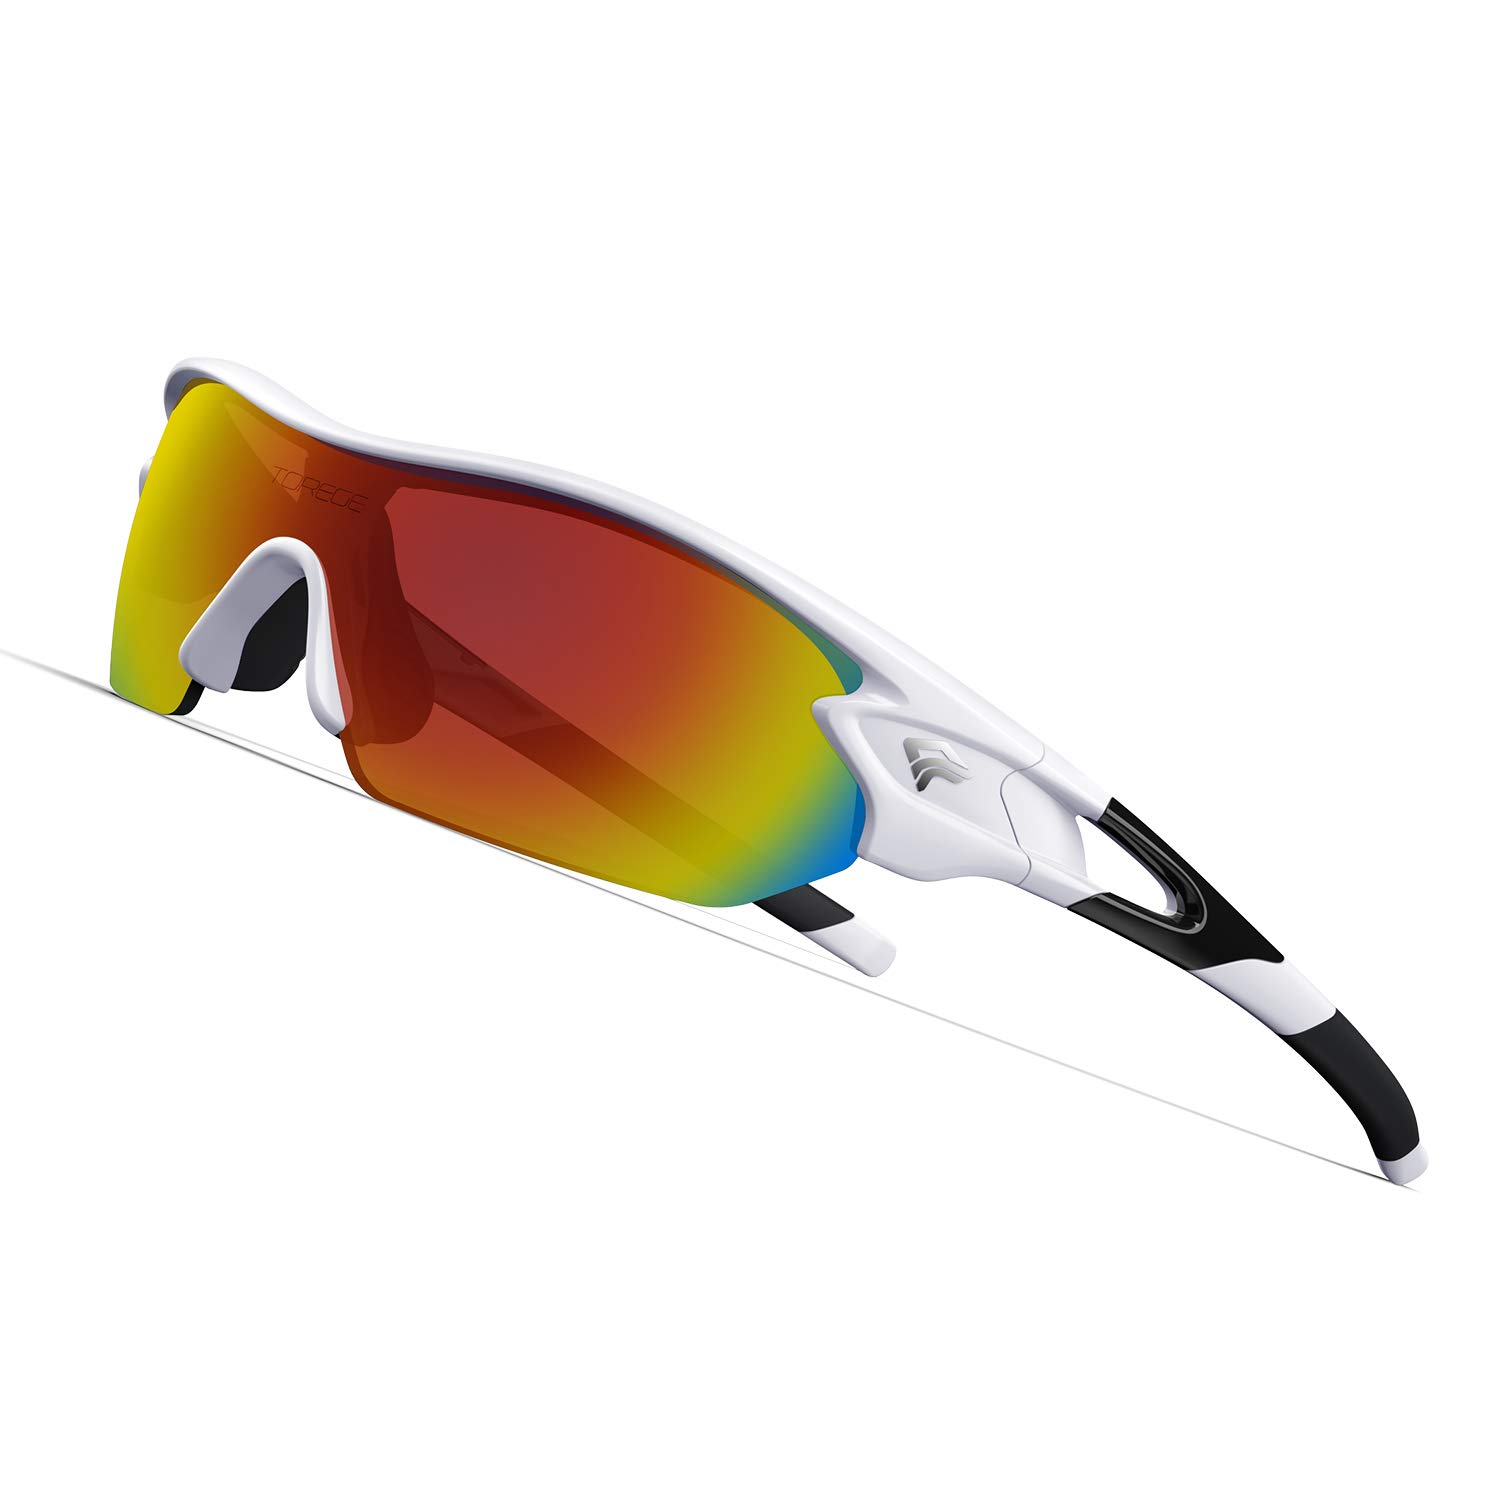 TOREGE Polarized Sports Sunglasses with 3 Interchangeable Lenes for Men Women Cycling Running Driving Fishing Golf Baseball Glasses TR002 (White&Black) by TOREGE